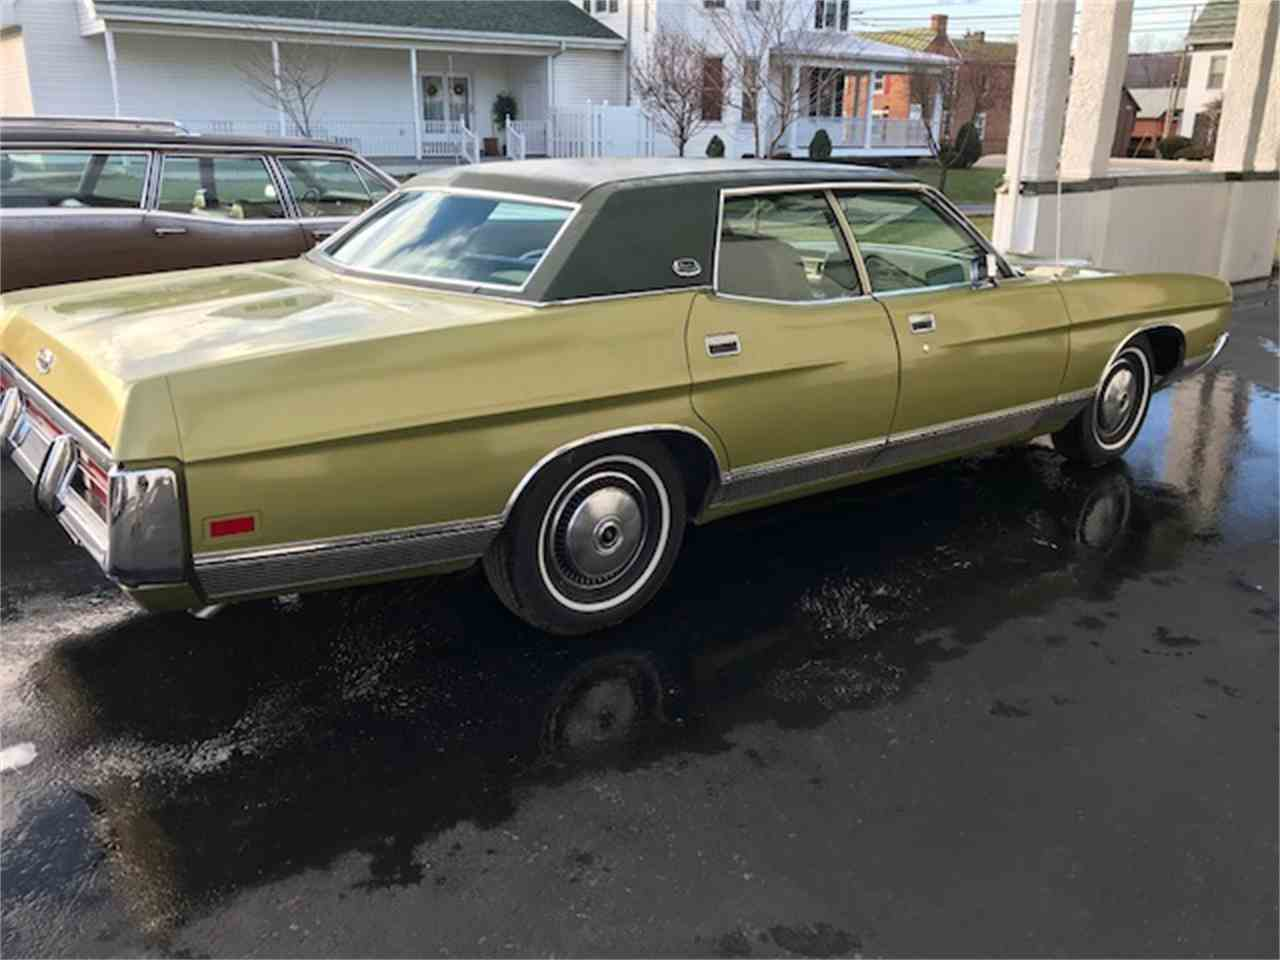 Large Picture of 1972 LTD located in Romney West Virginia - $5,850.00 Offered by a Private Seller - MYMQ